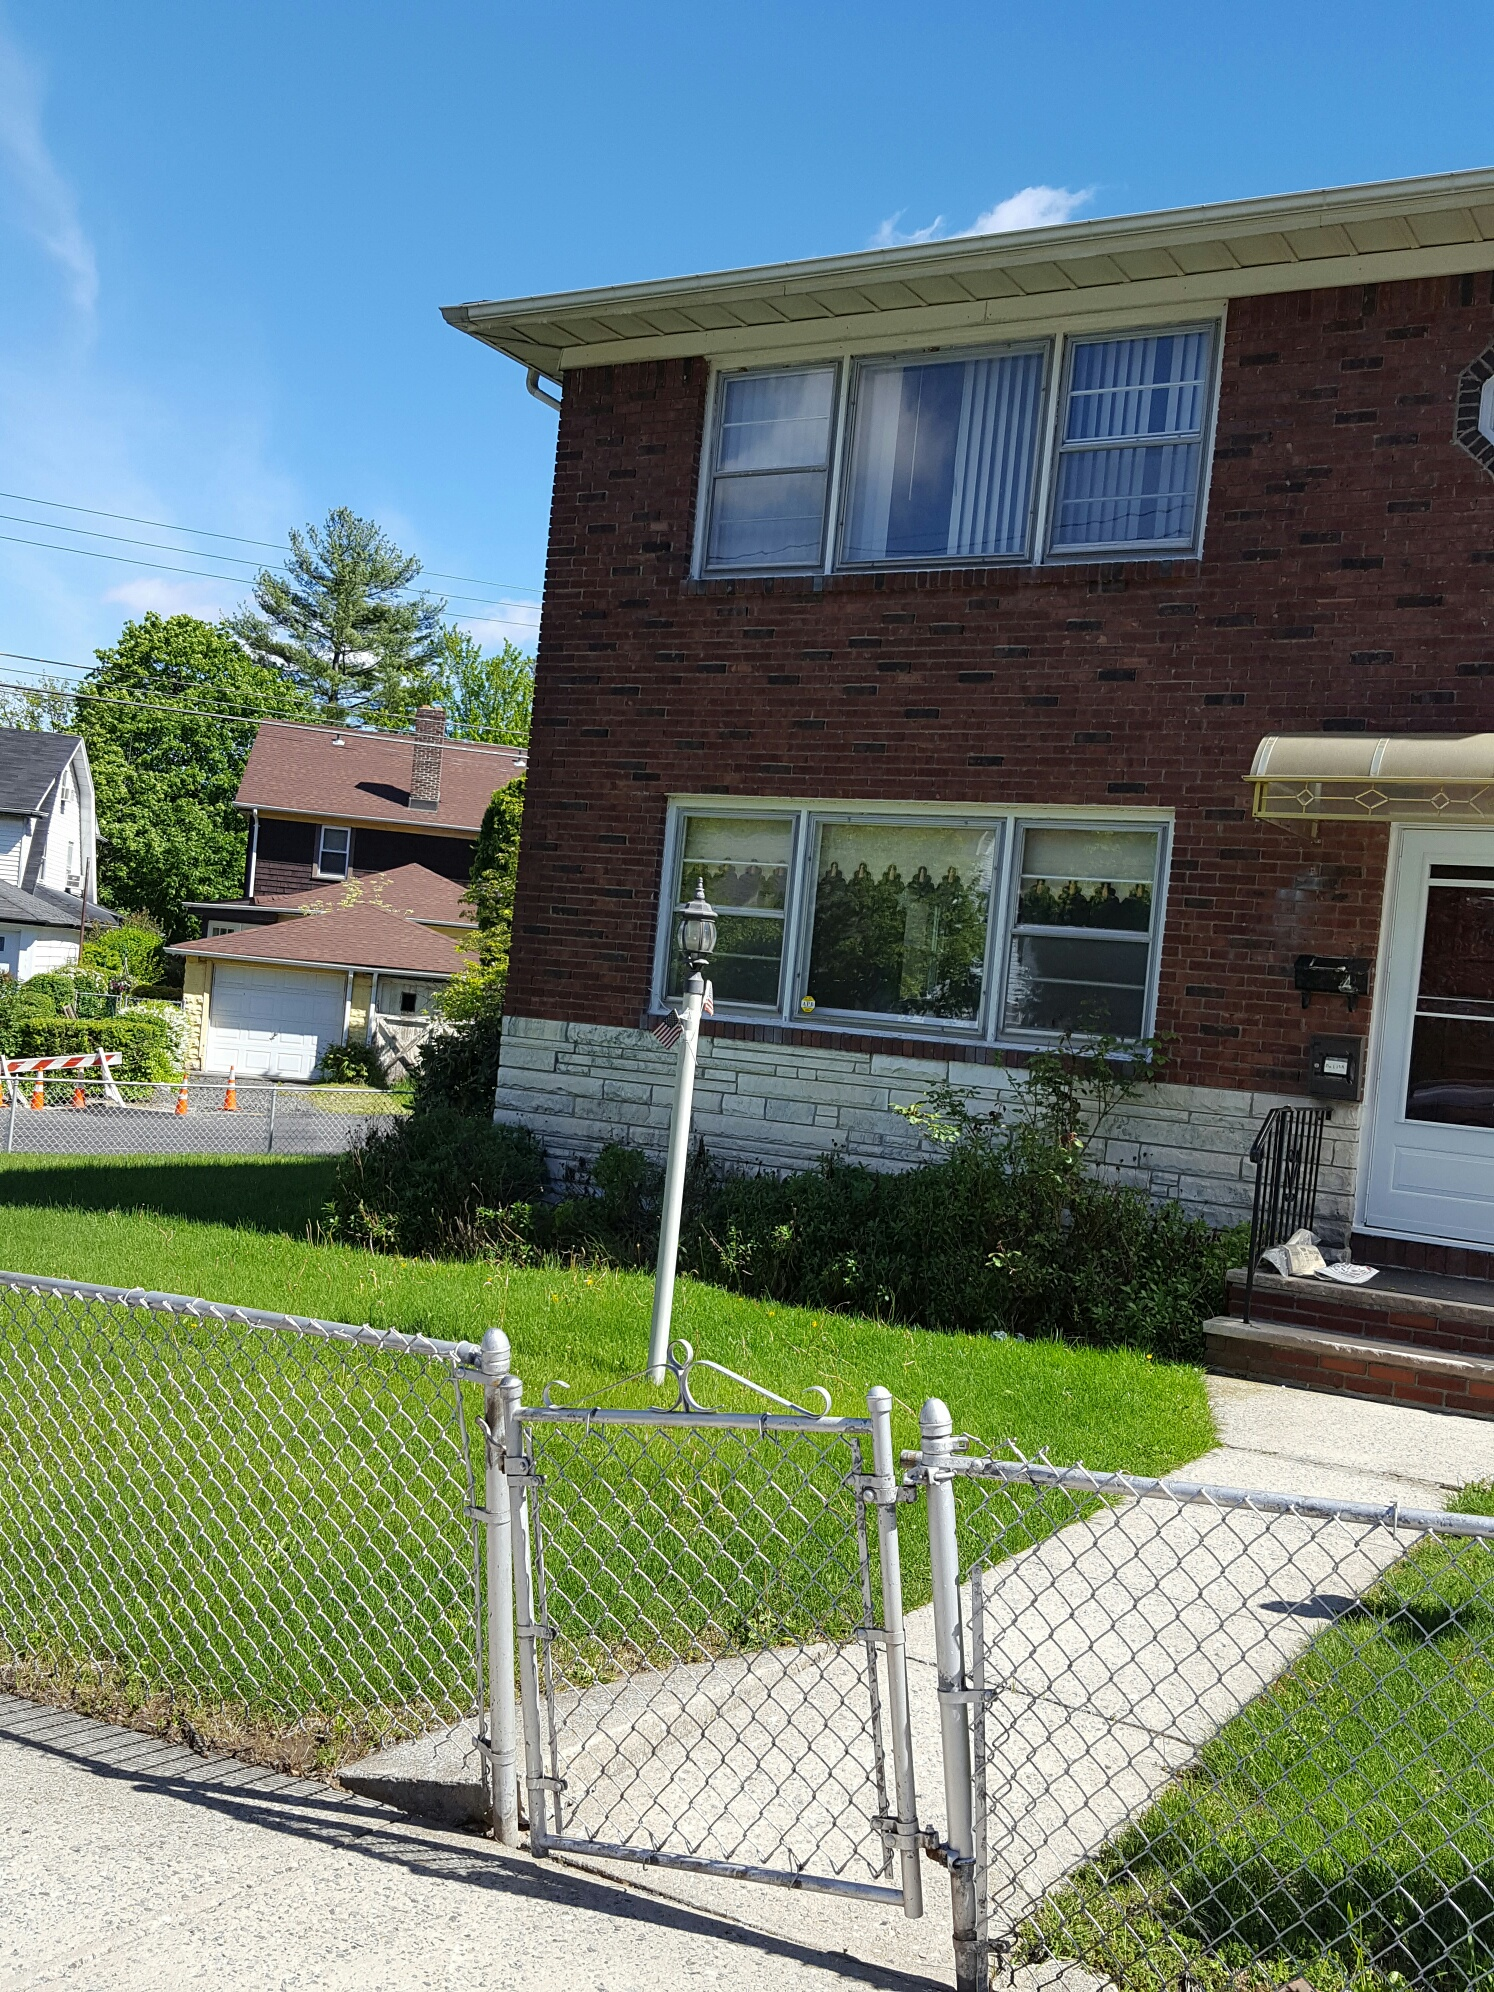 2 bedroom plus basement (shared use) hook ups, nice area, one block from Victory Blvd